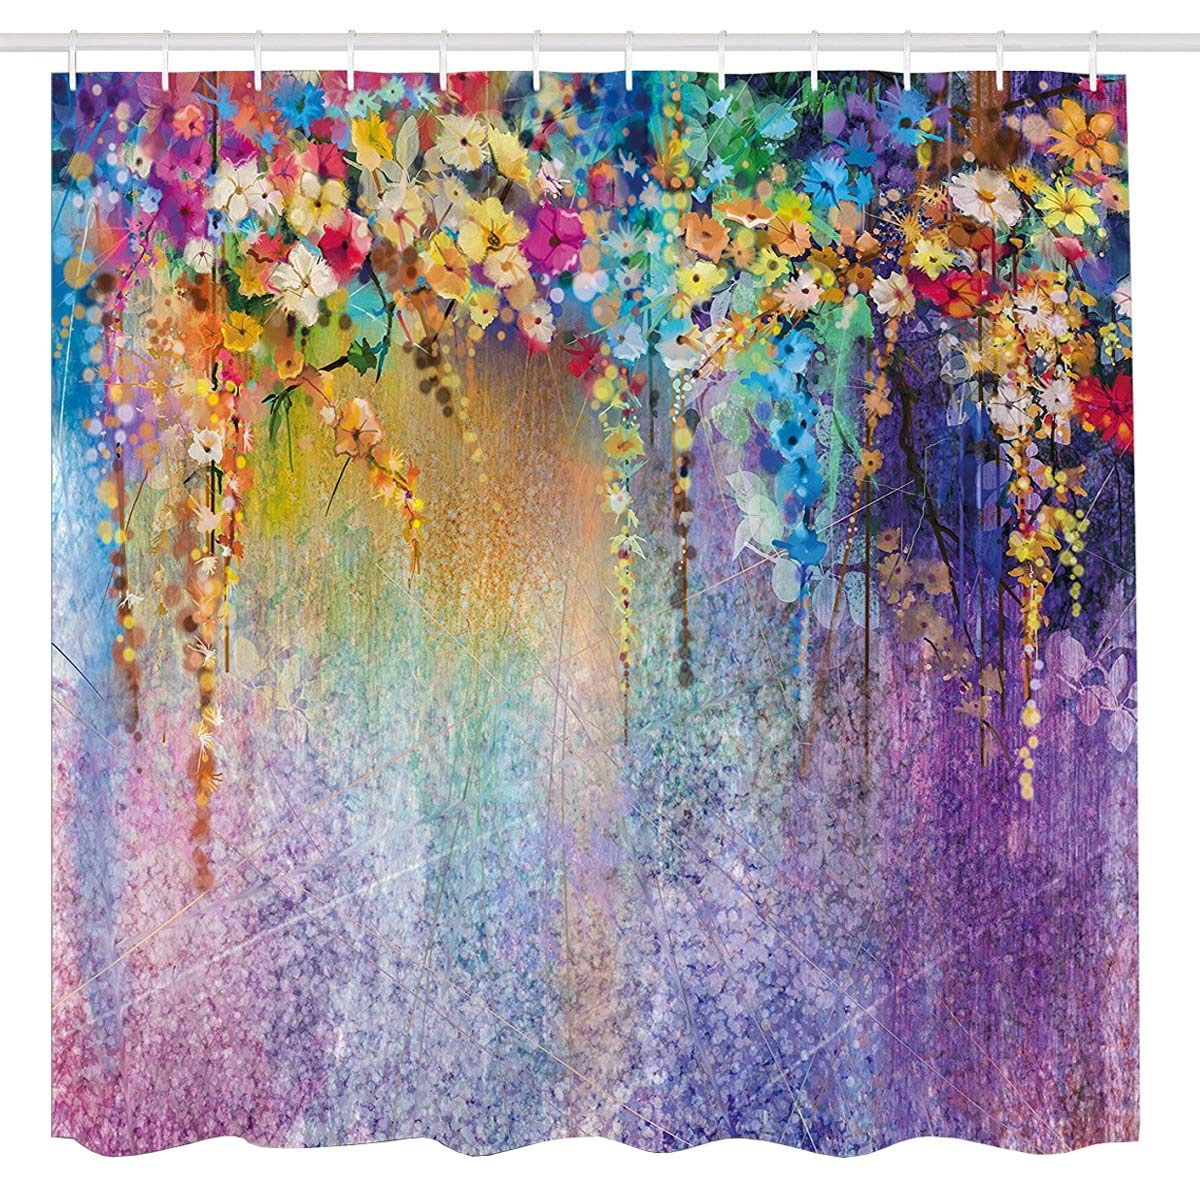 BROSHAN Watercolor Flower Shower Curtain Set, Abstract Purple Weeping Flower Wisteria Blurred Art Painting, Colorful Fabric Waterproof Bathroom Decor Set with Hooks,72 x 72 Inch